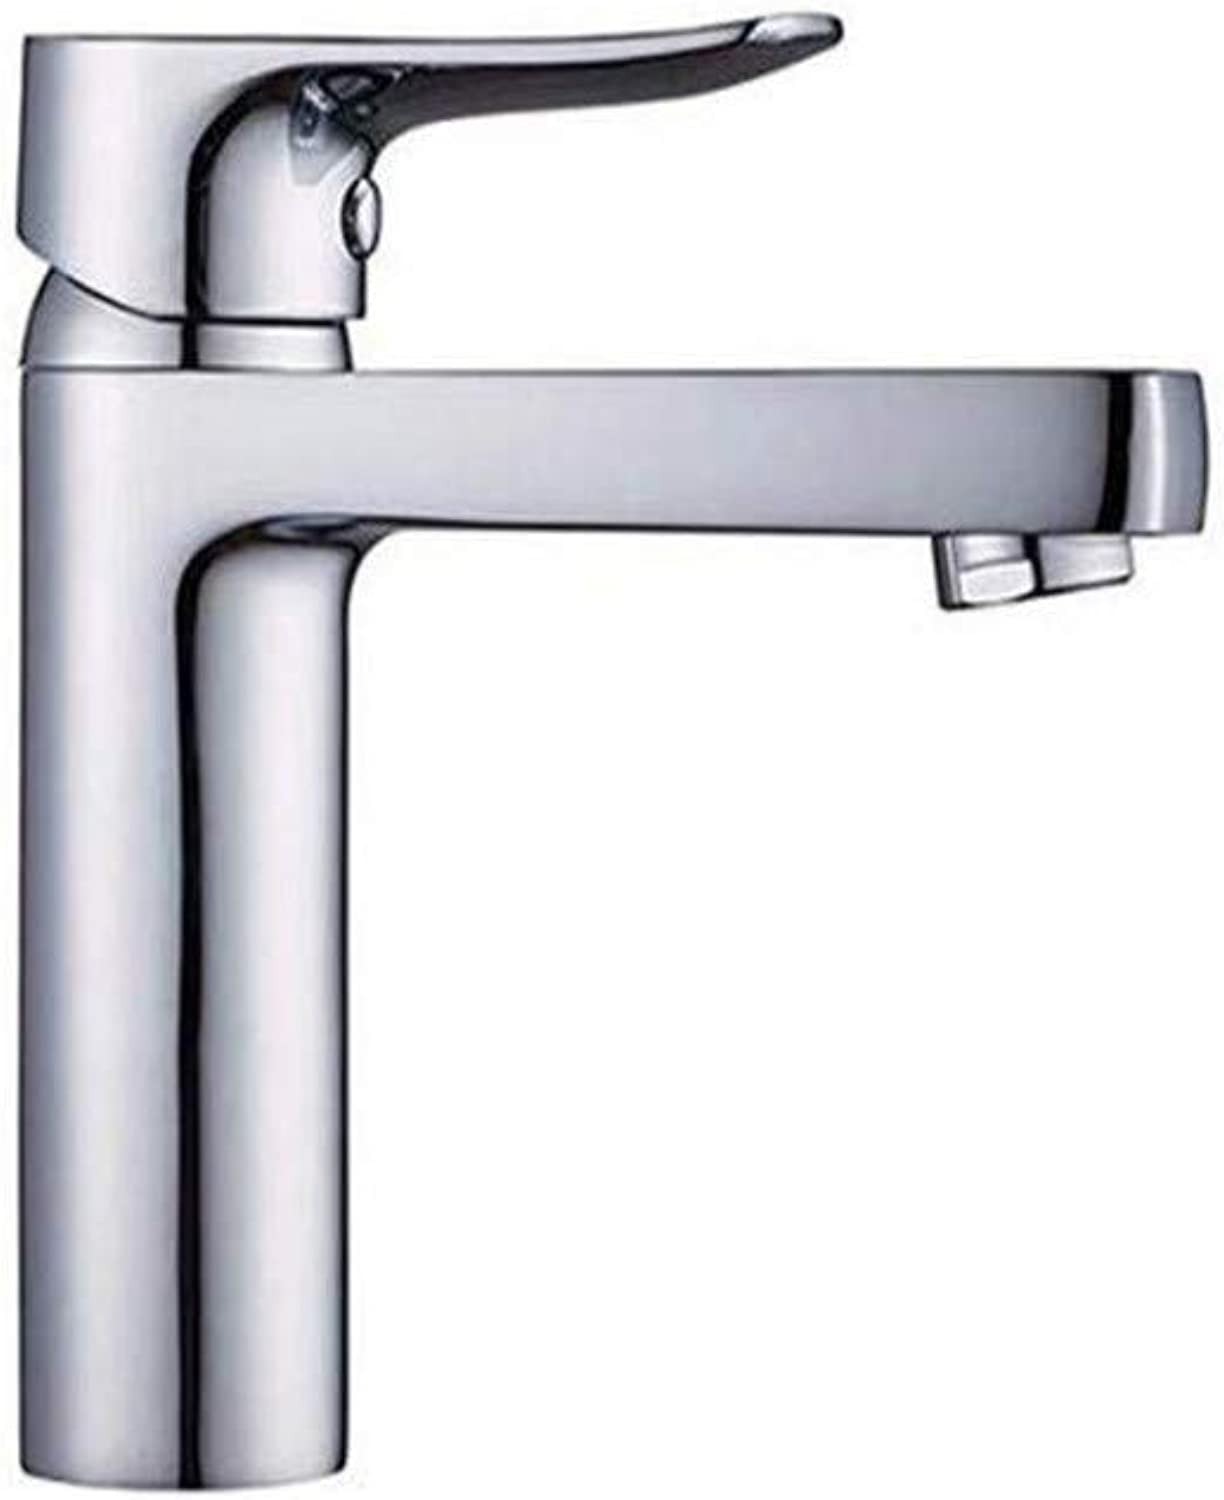 Faucetbasin Faucet Bathroom Sink Tap Copper Single Hole Single Handle Hot and Cold Water Faucet Seat Type Ceramic Valve Core Kitchen Bathroom Basin Faucet Bathroom Faucet